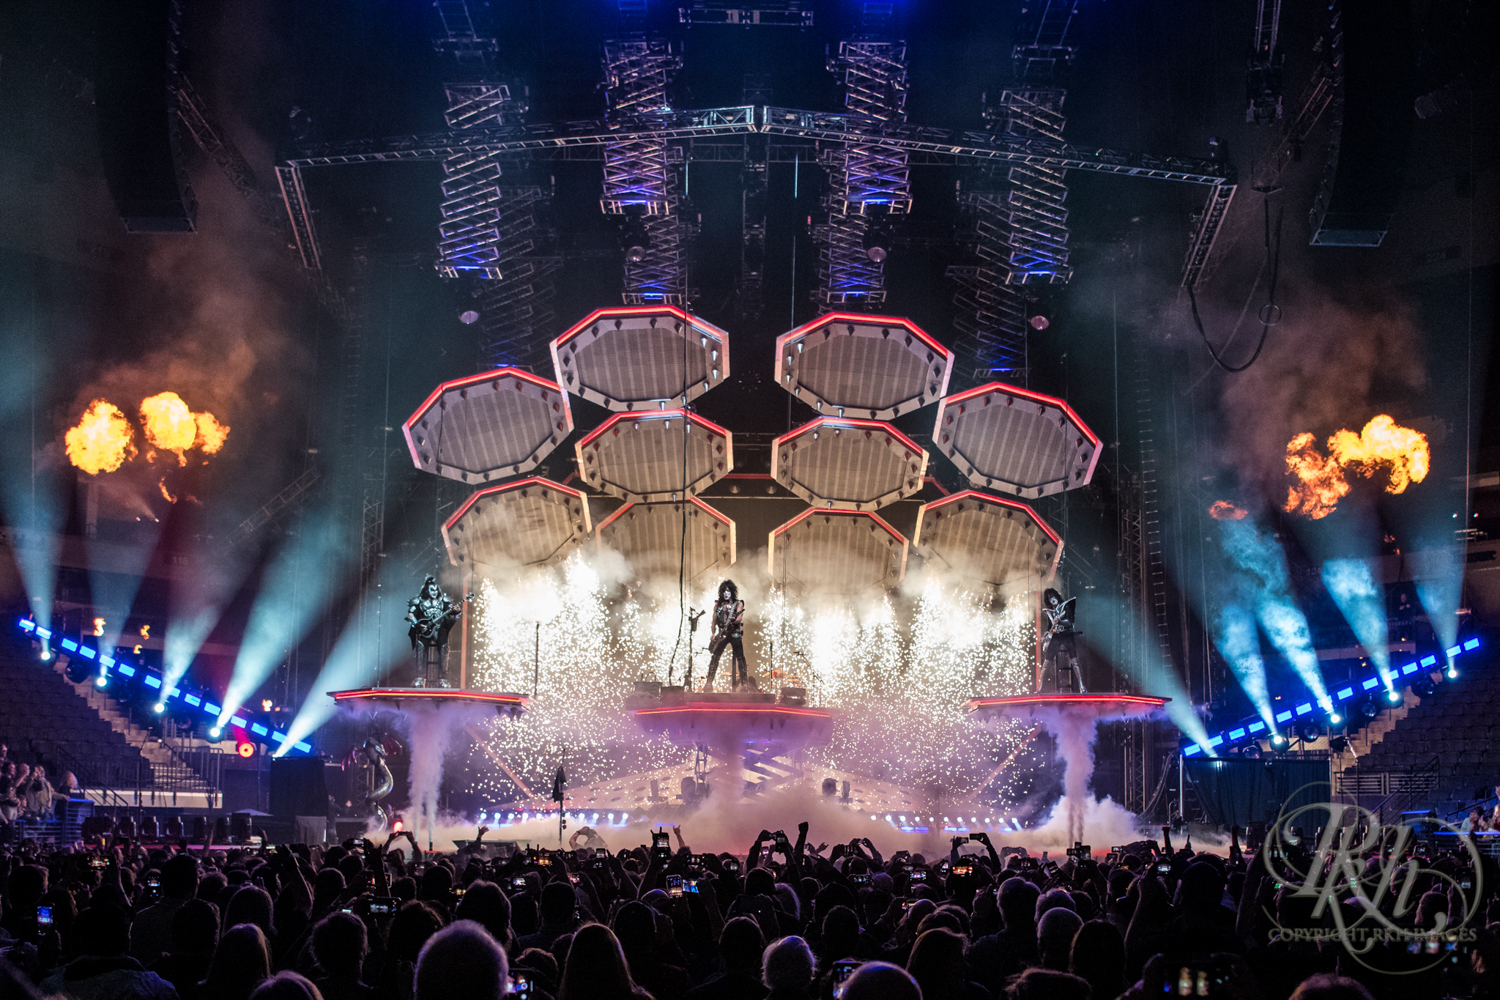 Kiss - End of the Road Tour - Target Center - Minneapolis - Concert Photography - RKH Images  (1 of 12).jpg